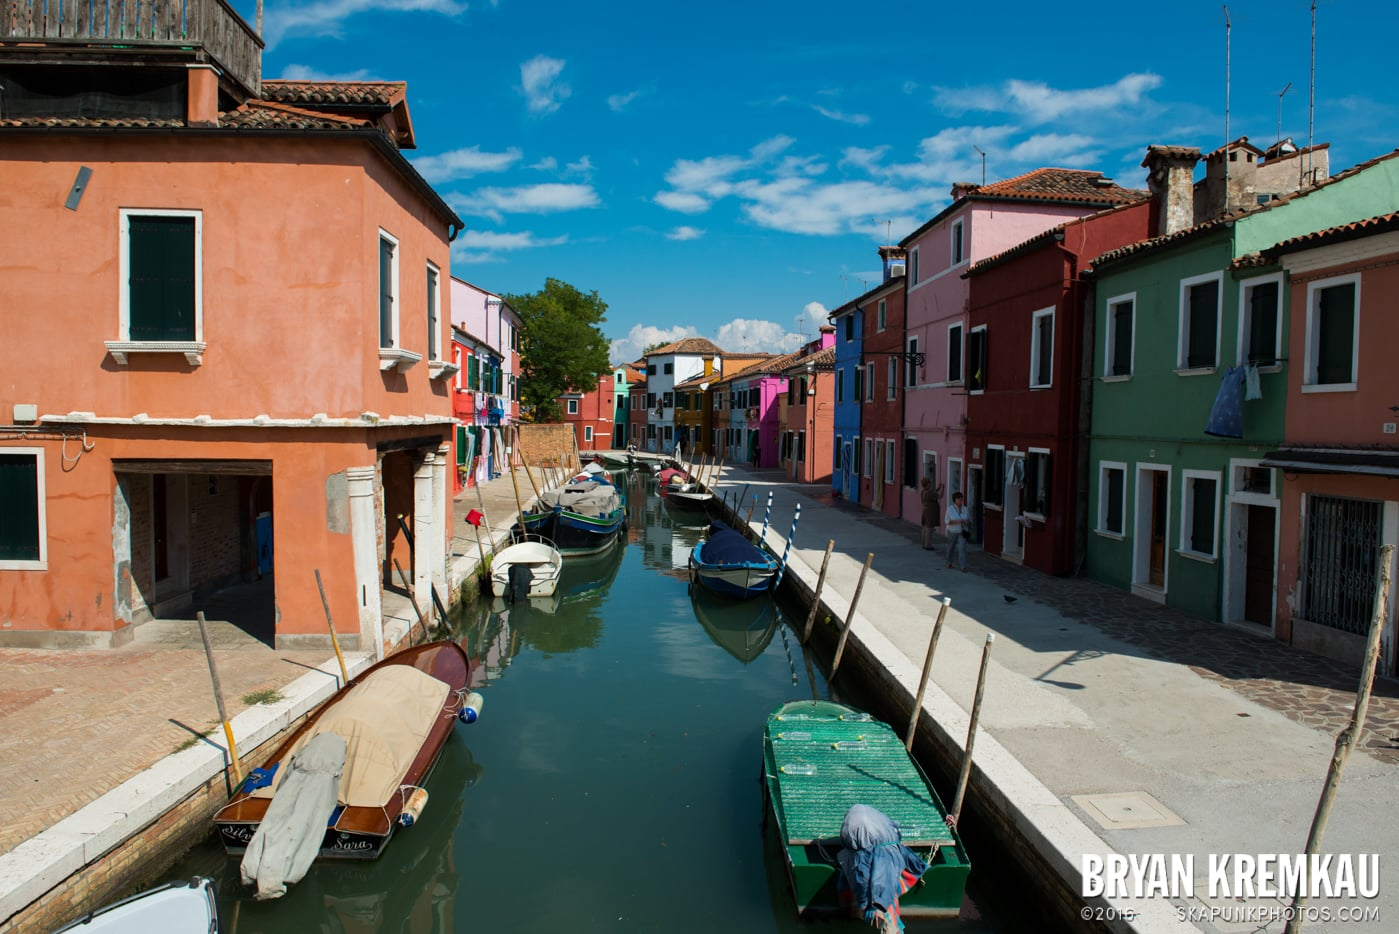 Italy Vacation - Day 6: Murano, Burano, Venice - 9.14.13 (52)